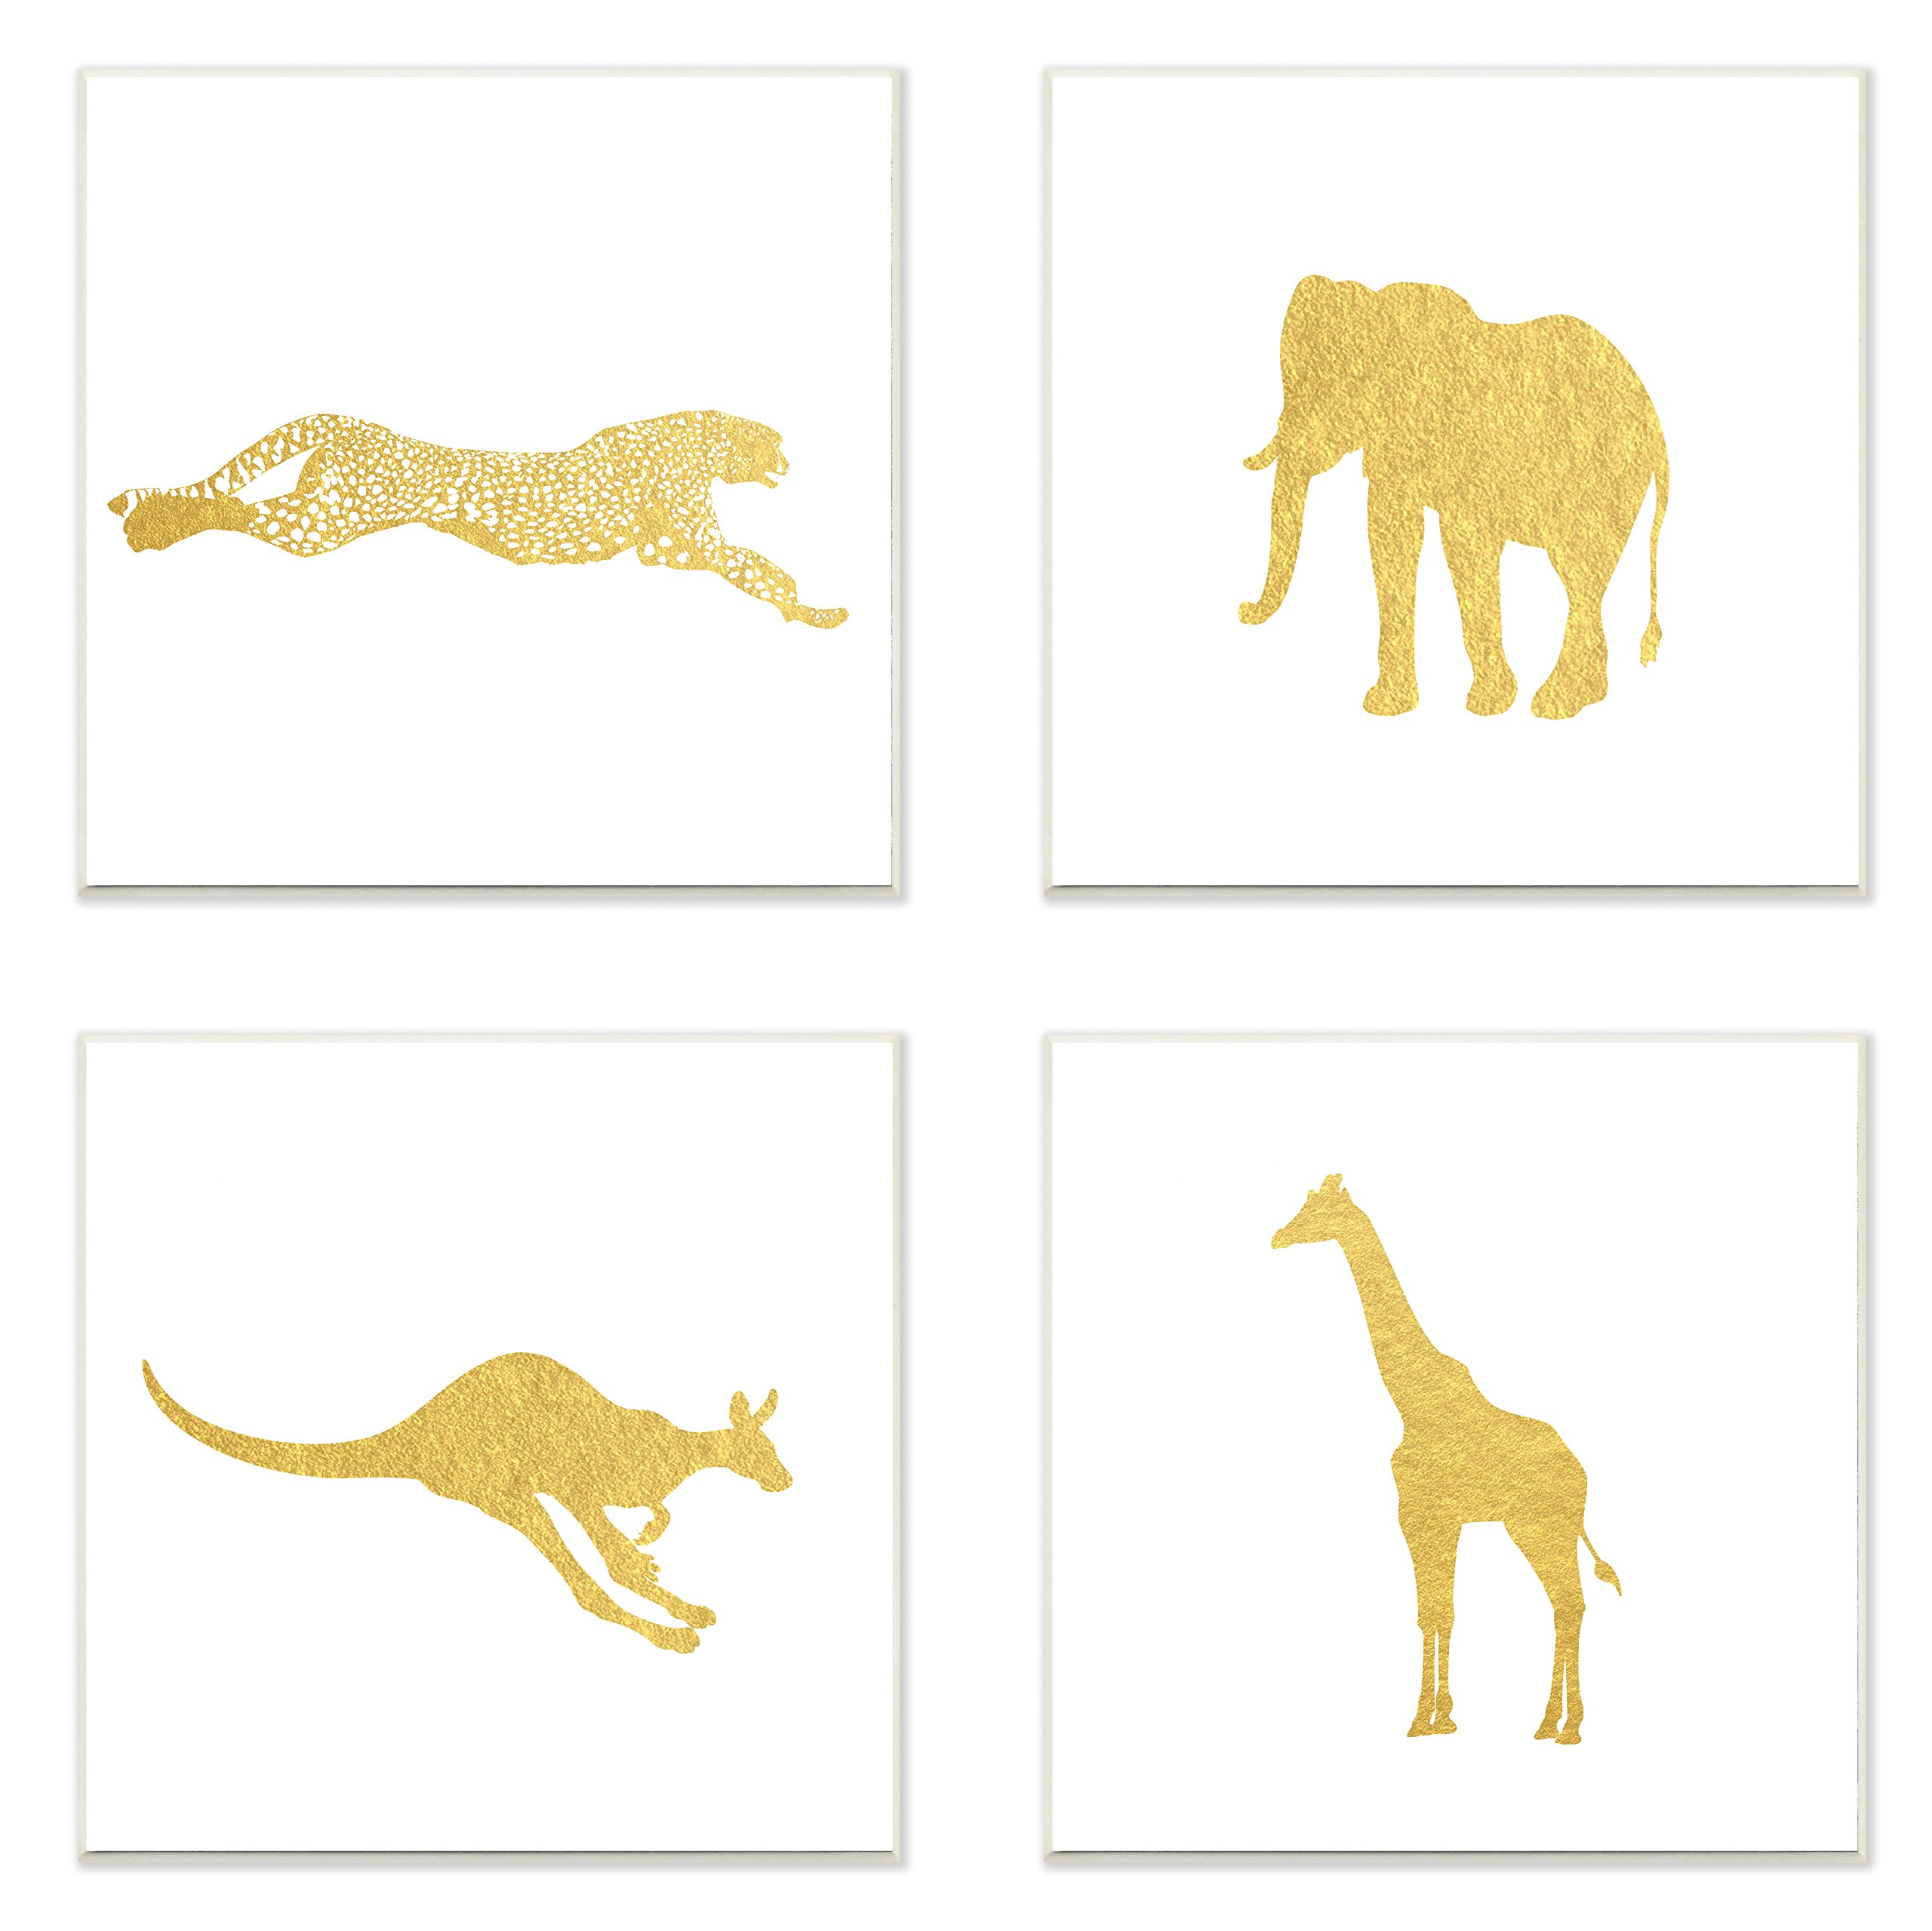 Stupell Home Décor Golden Animal Silhouettes Cheetah Elephant Kangaroo Giraffe 3pc Wall Plaque Art Set, 12 x 0.5 x 12, Proudly Made in USA by The Kids Room by Stupell